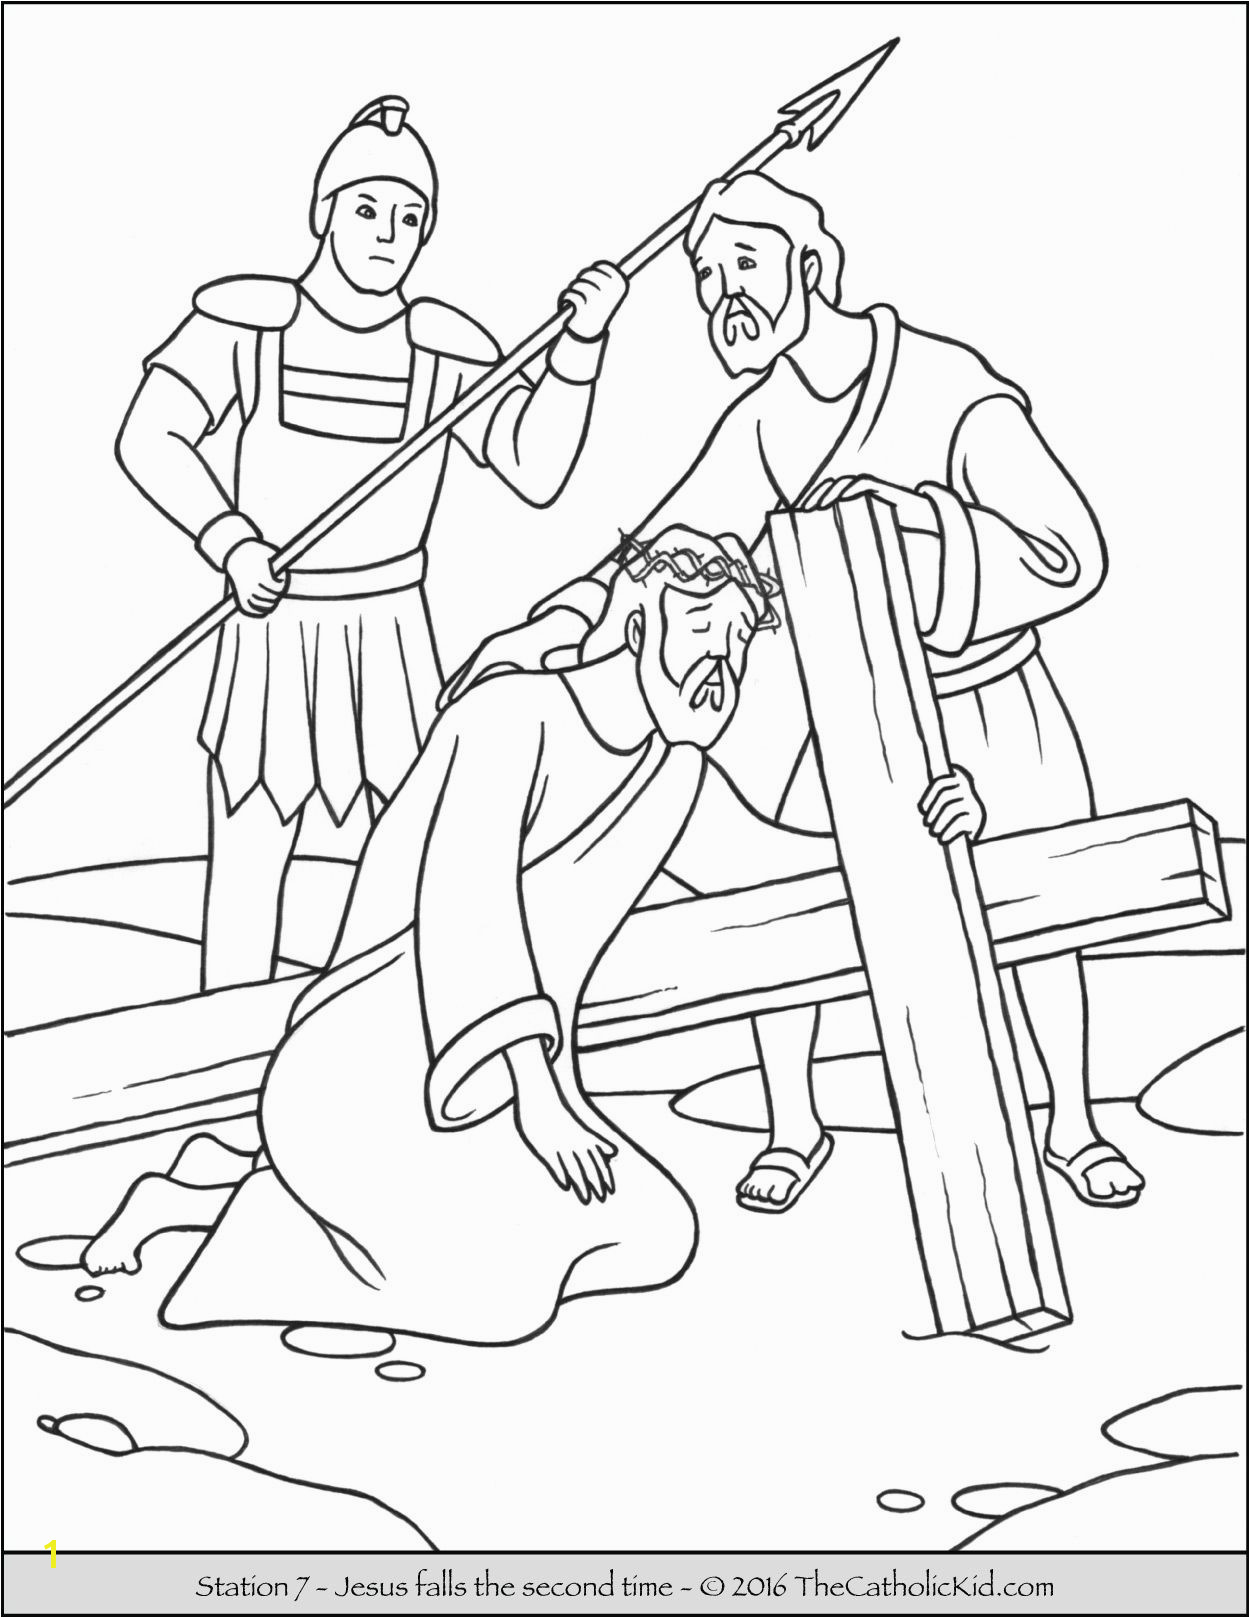 Stations of the Cross Coloring Pages 7 Jesus Falls the Second Time